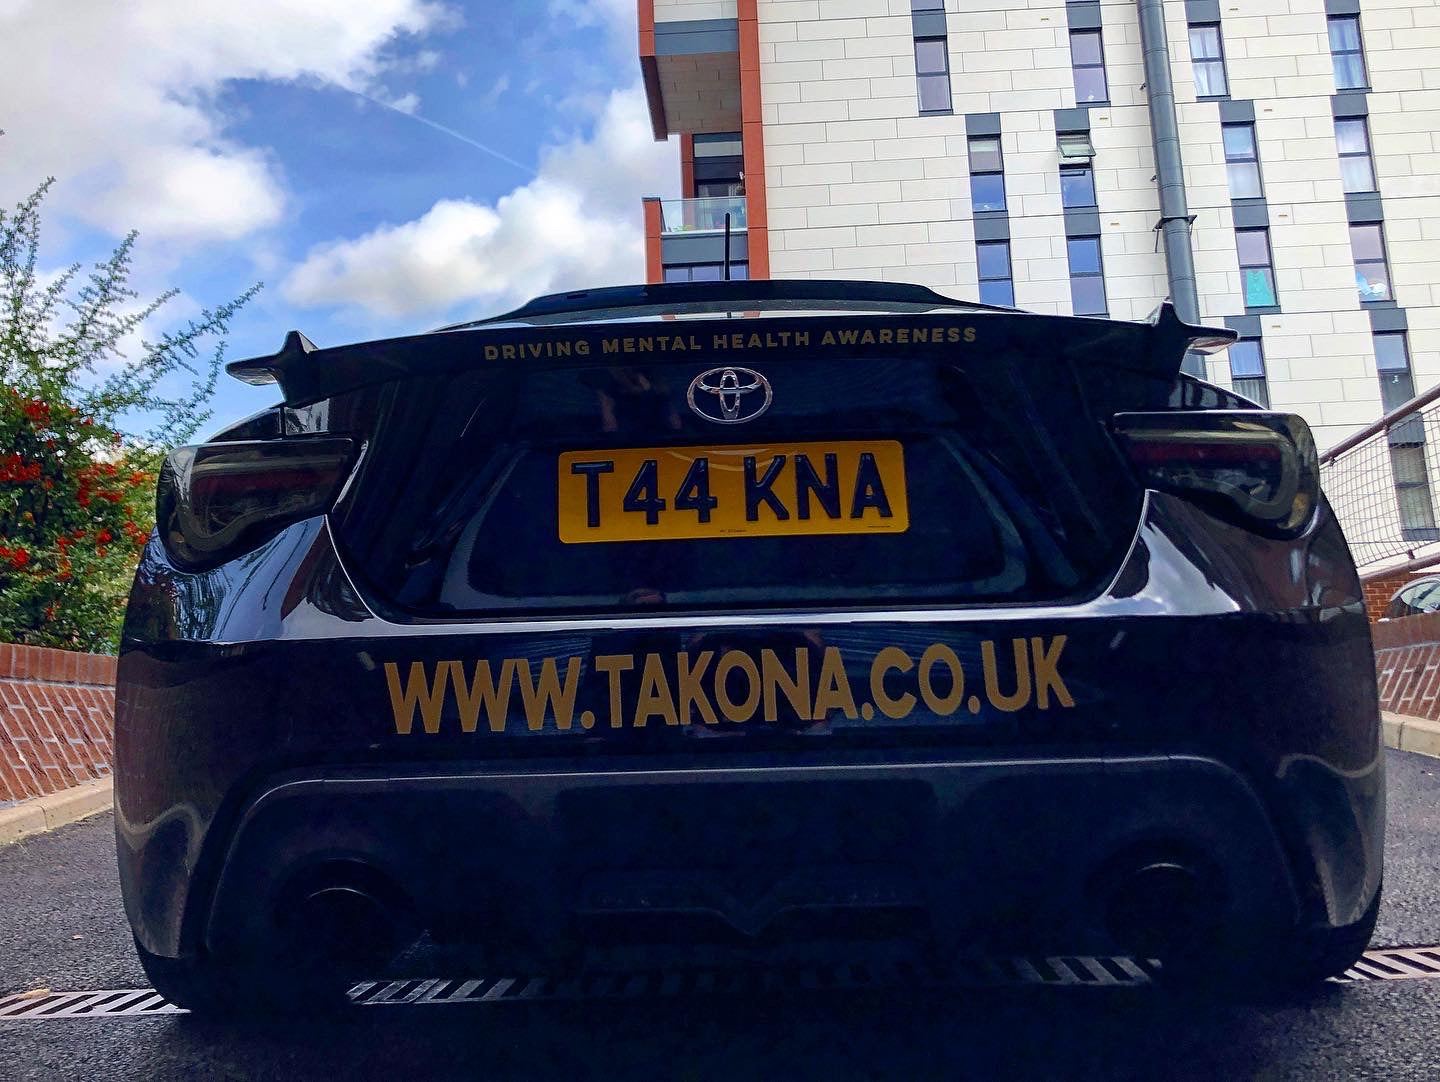 Takona GT86 with the New T44KNA Number plate